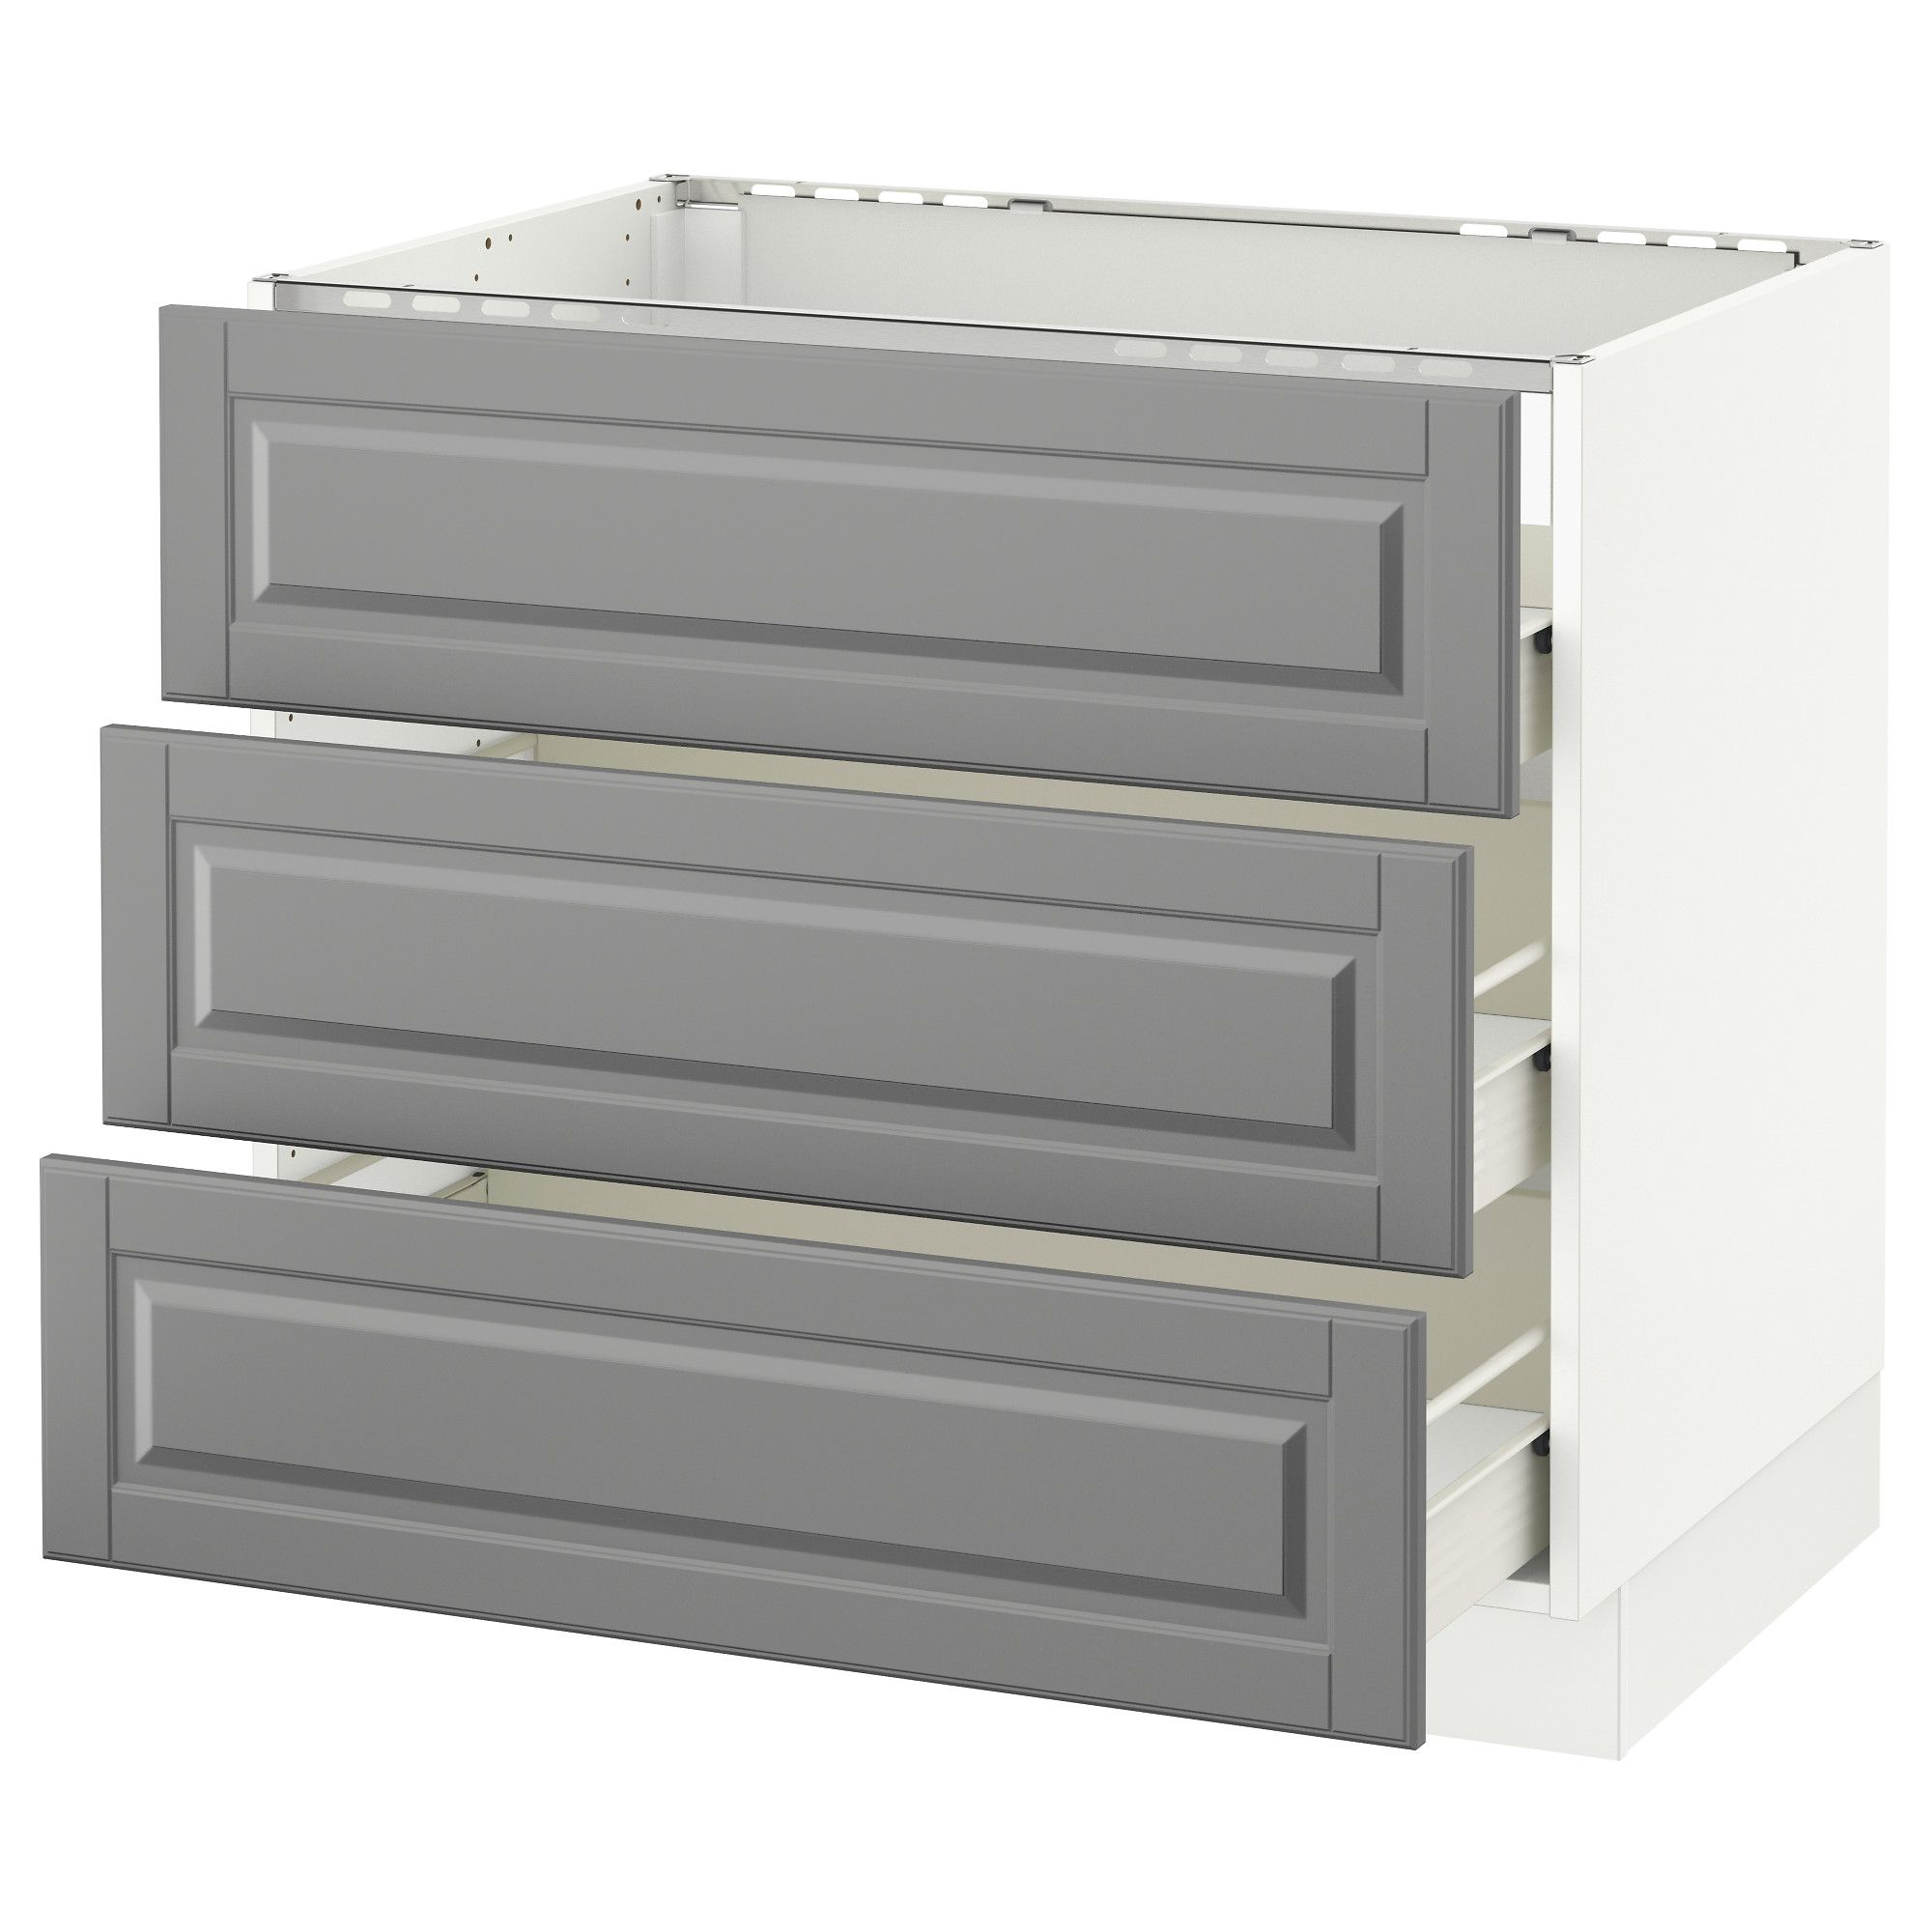 Base Cabinet F Cooktop W 3drawers White Forvara Bodbyn Gray 36x24x30 Base Cabinets Kitchen Base Cabinets Bodbyn Grey